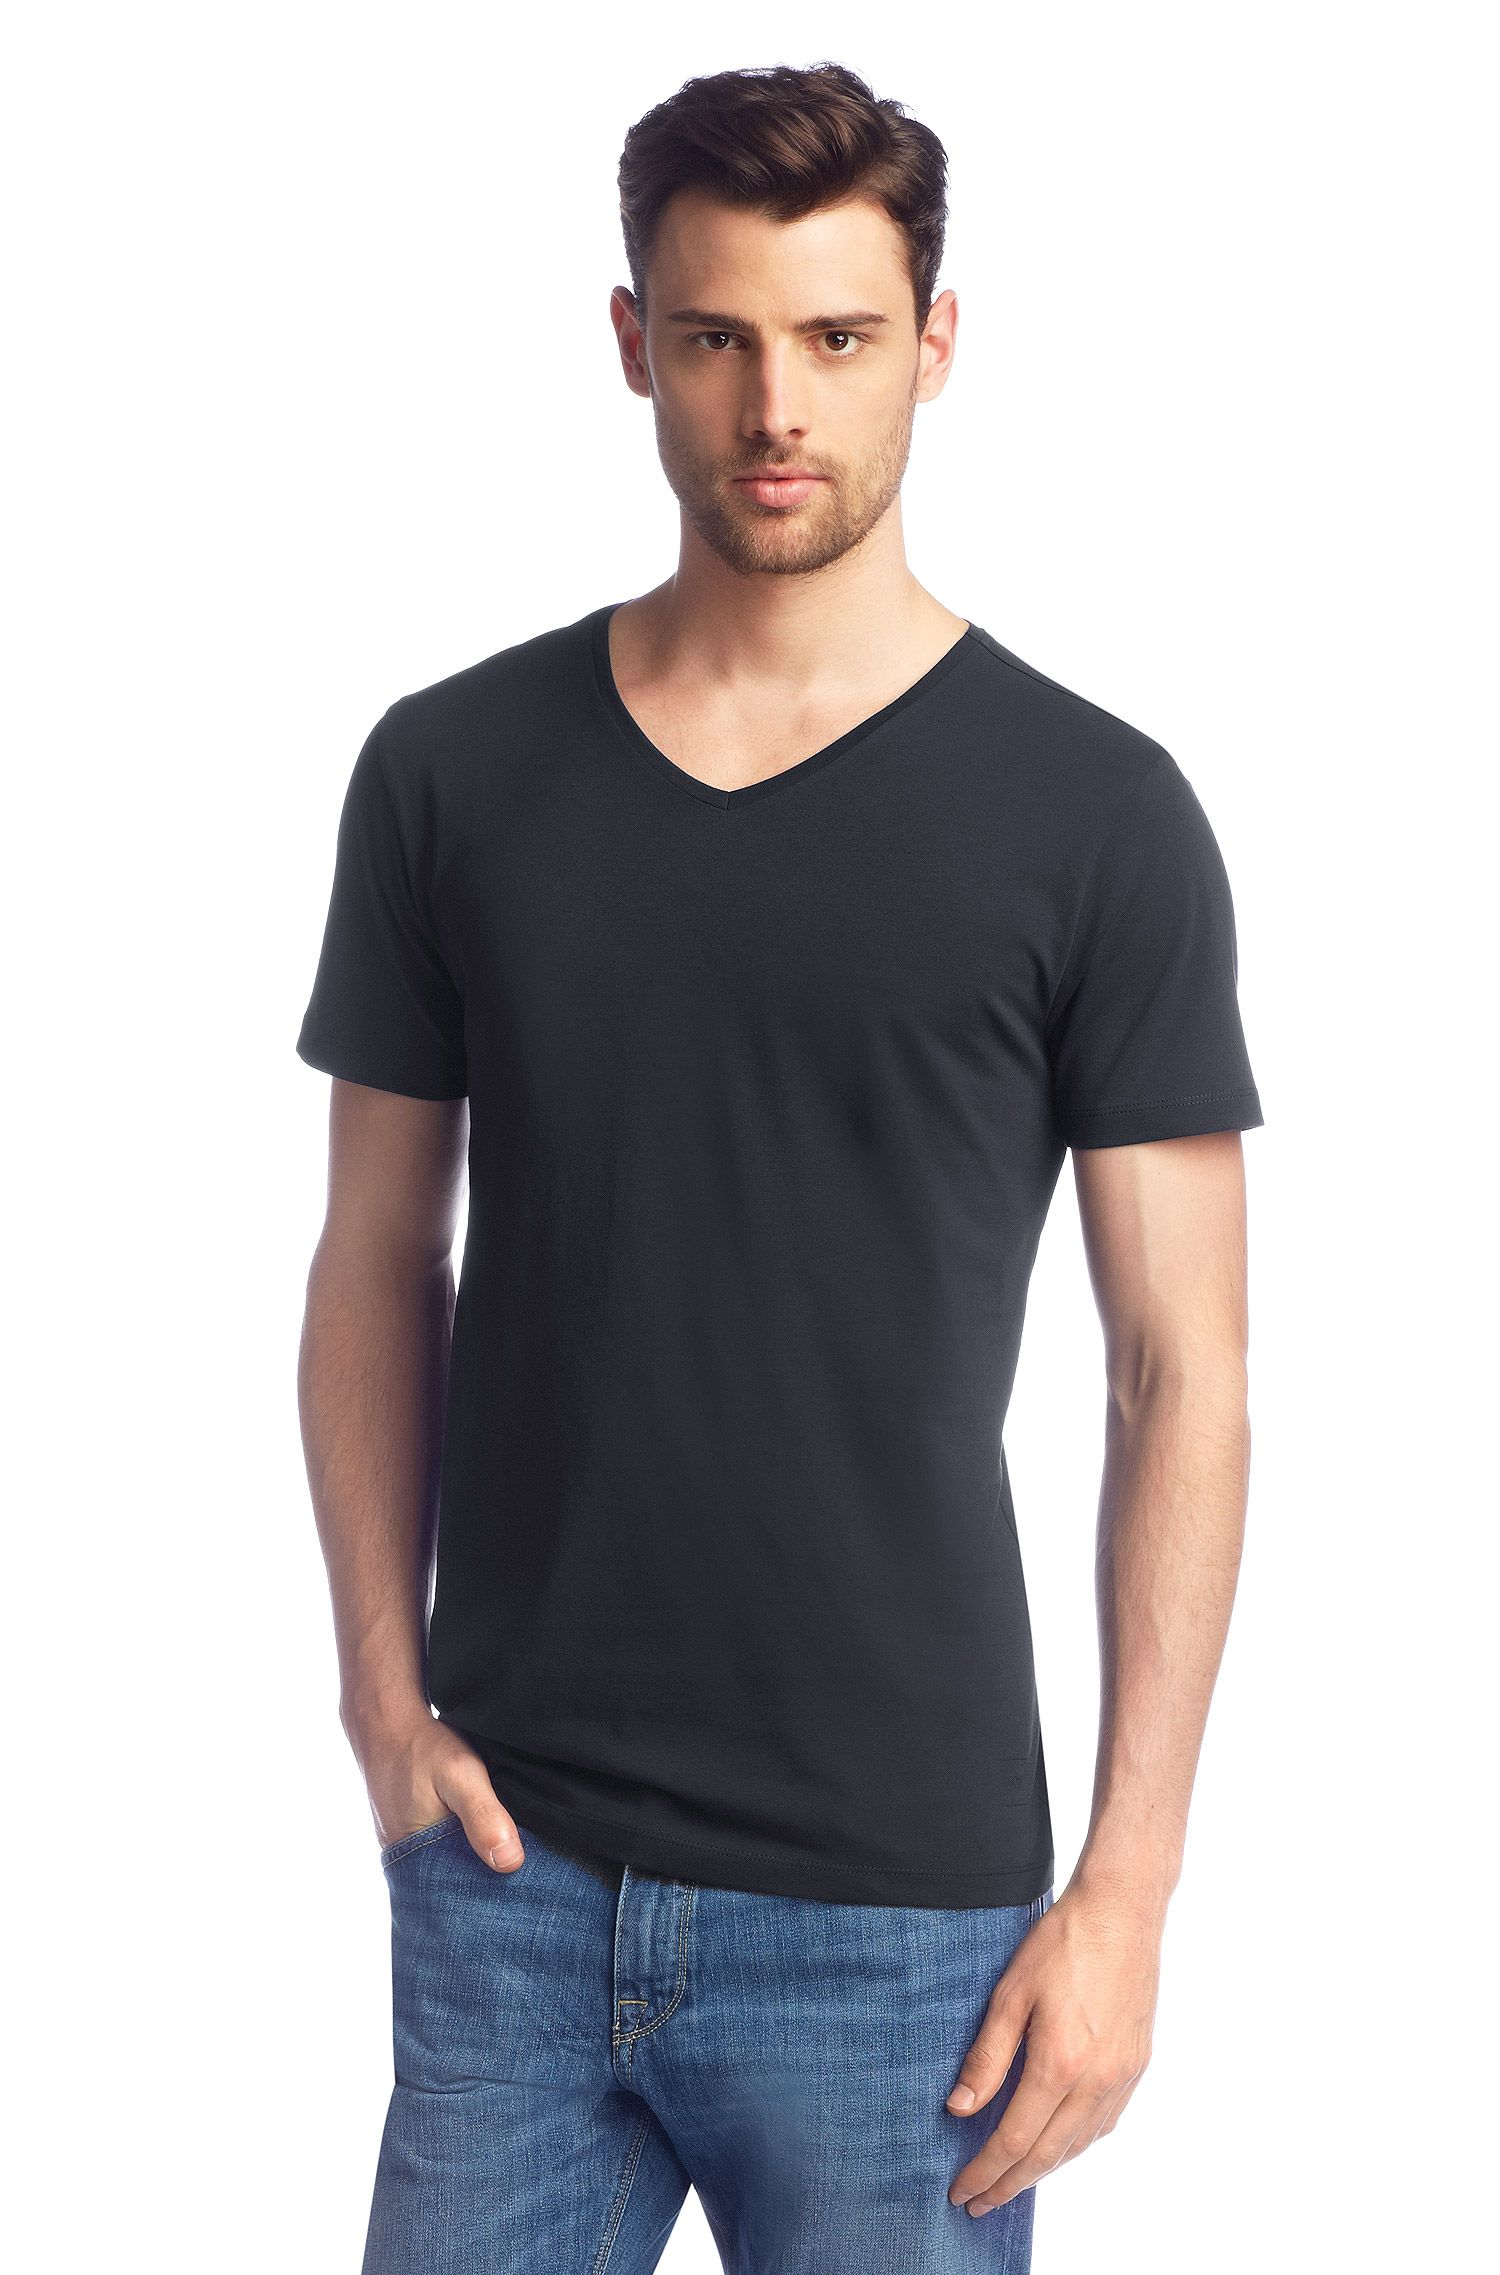 T-shirt Slim Fit, Canistro 80 Modern Essential